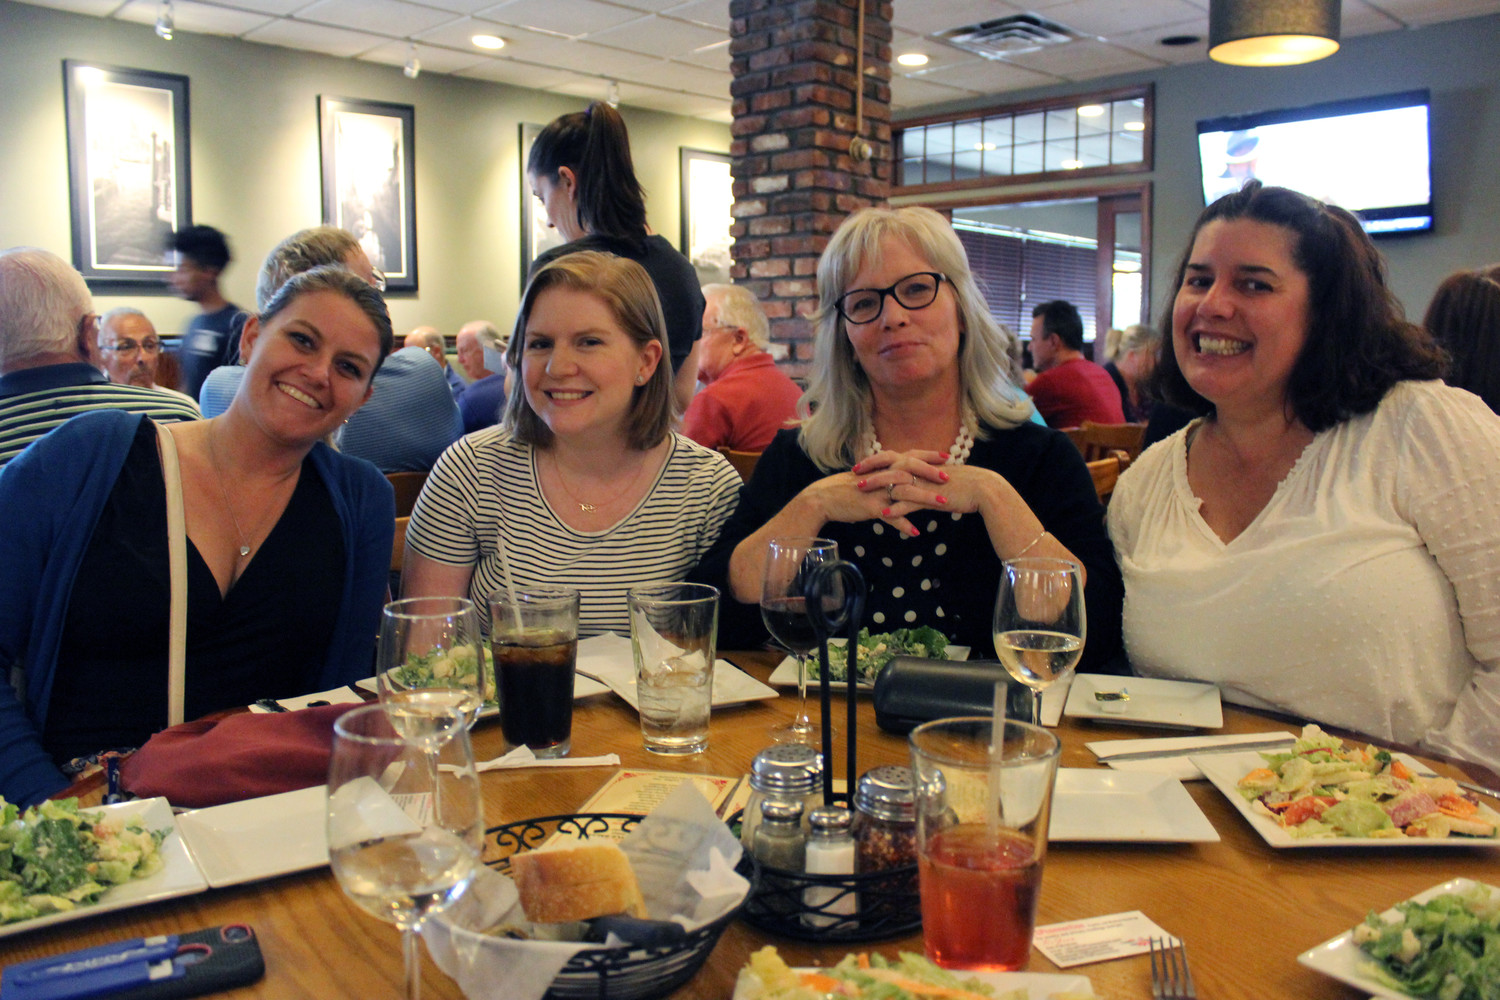 PeggyAnn Matusiak, second-from-right, of East Meadow, and her friends Mairead Matuscoli, Jen Corbett and Joan Iacoli spent a girl's night at Borrelli's Italian Restaurant in East Meadow for its monthly Psychic Night event.